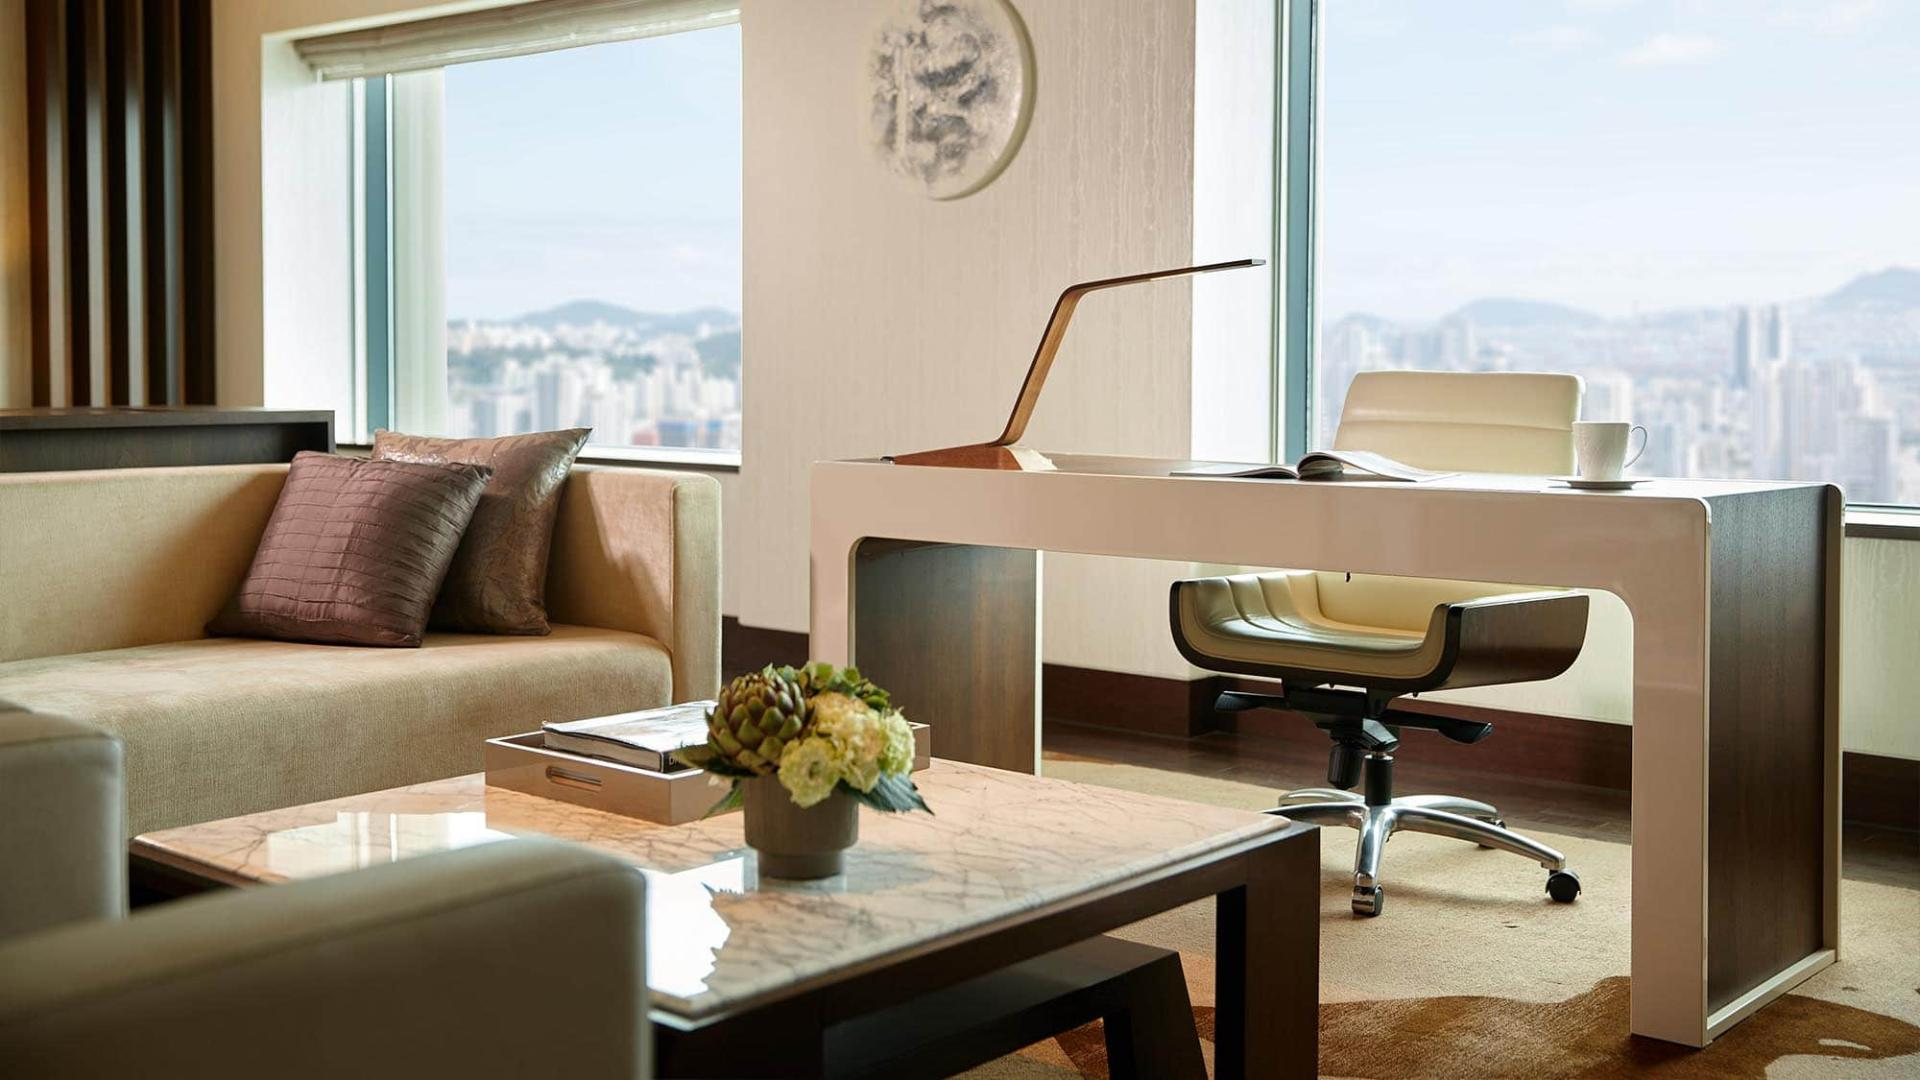 Lotte Hotel Busan-Rooms-Suite-Presidential Suite Room